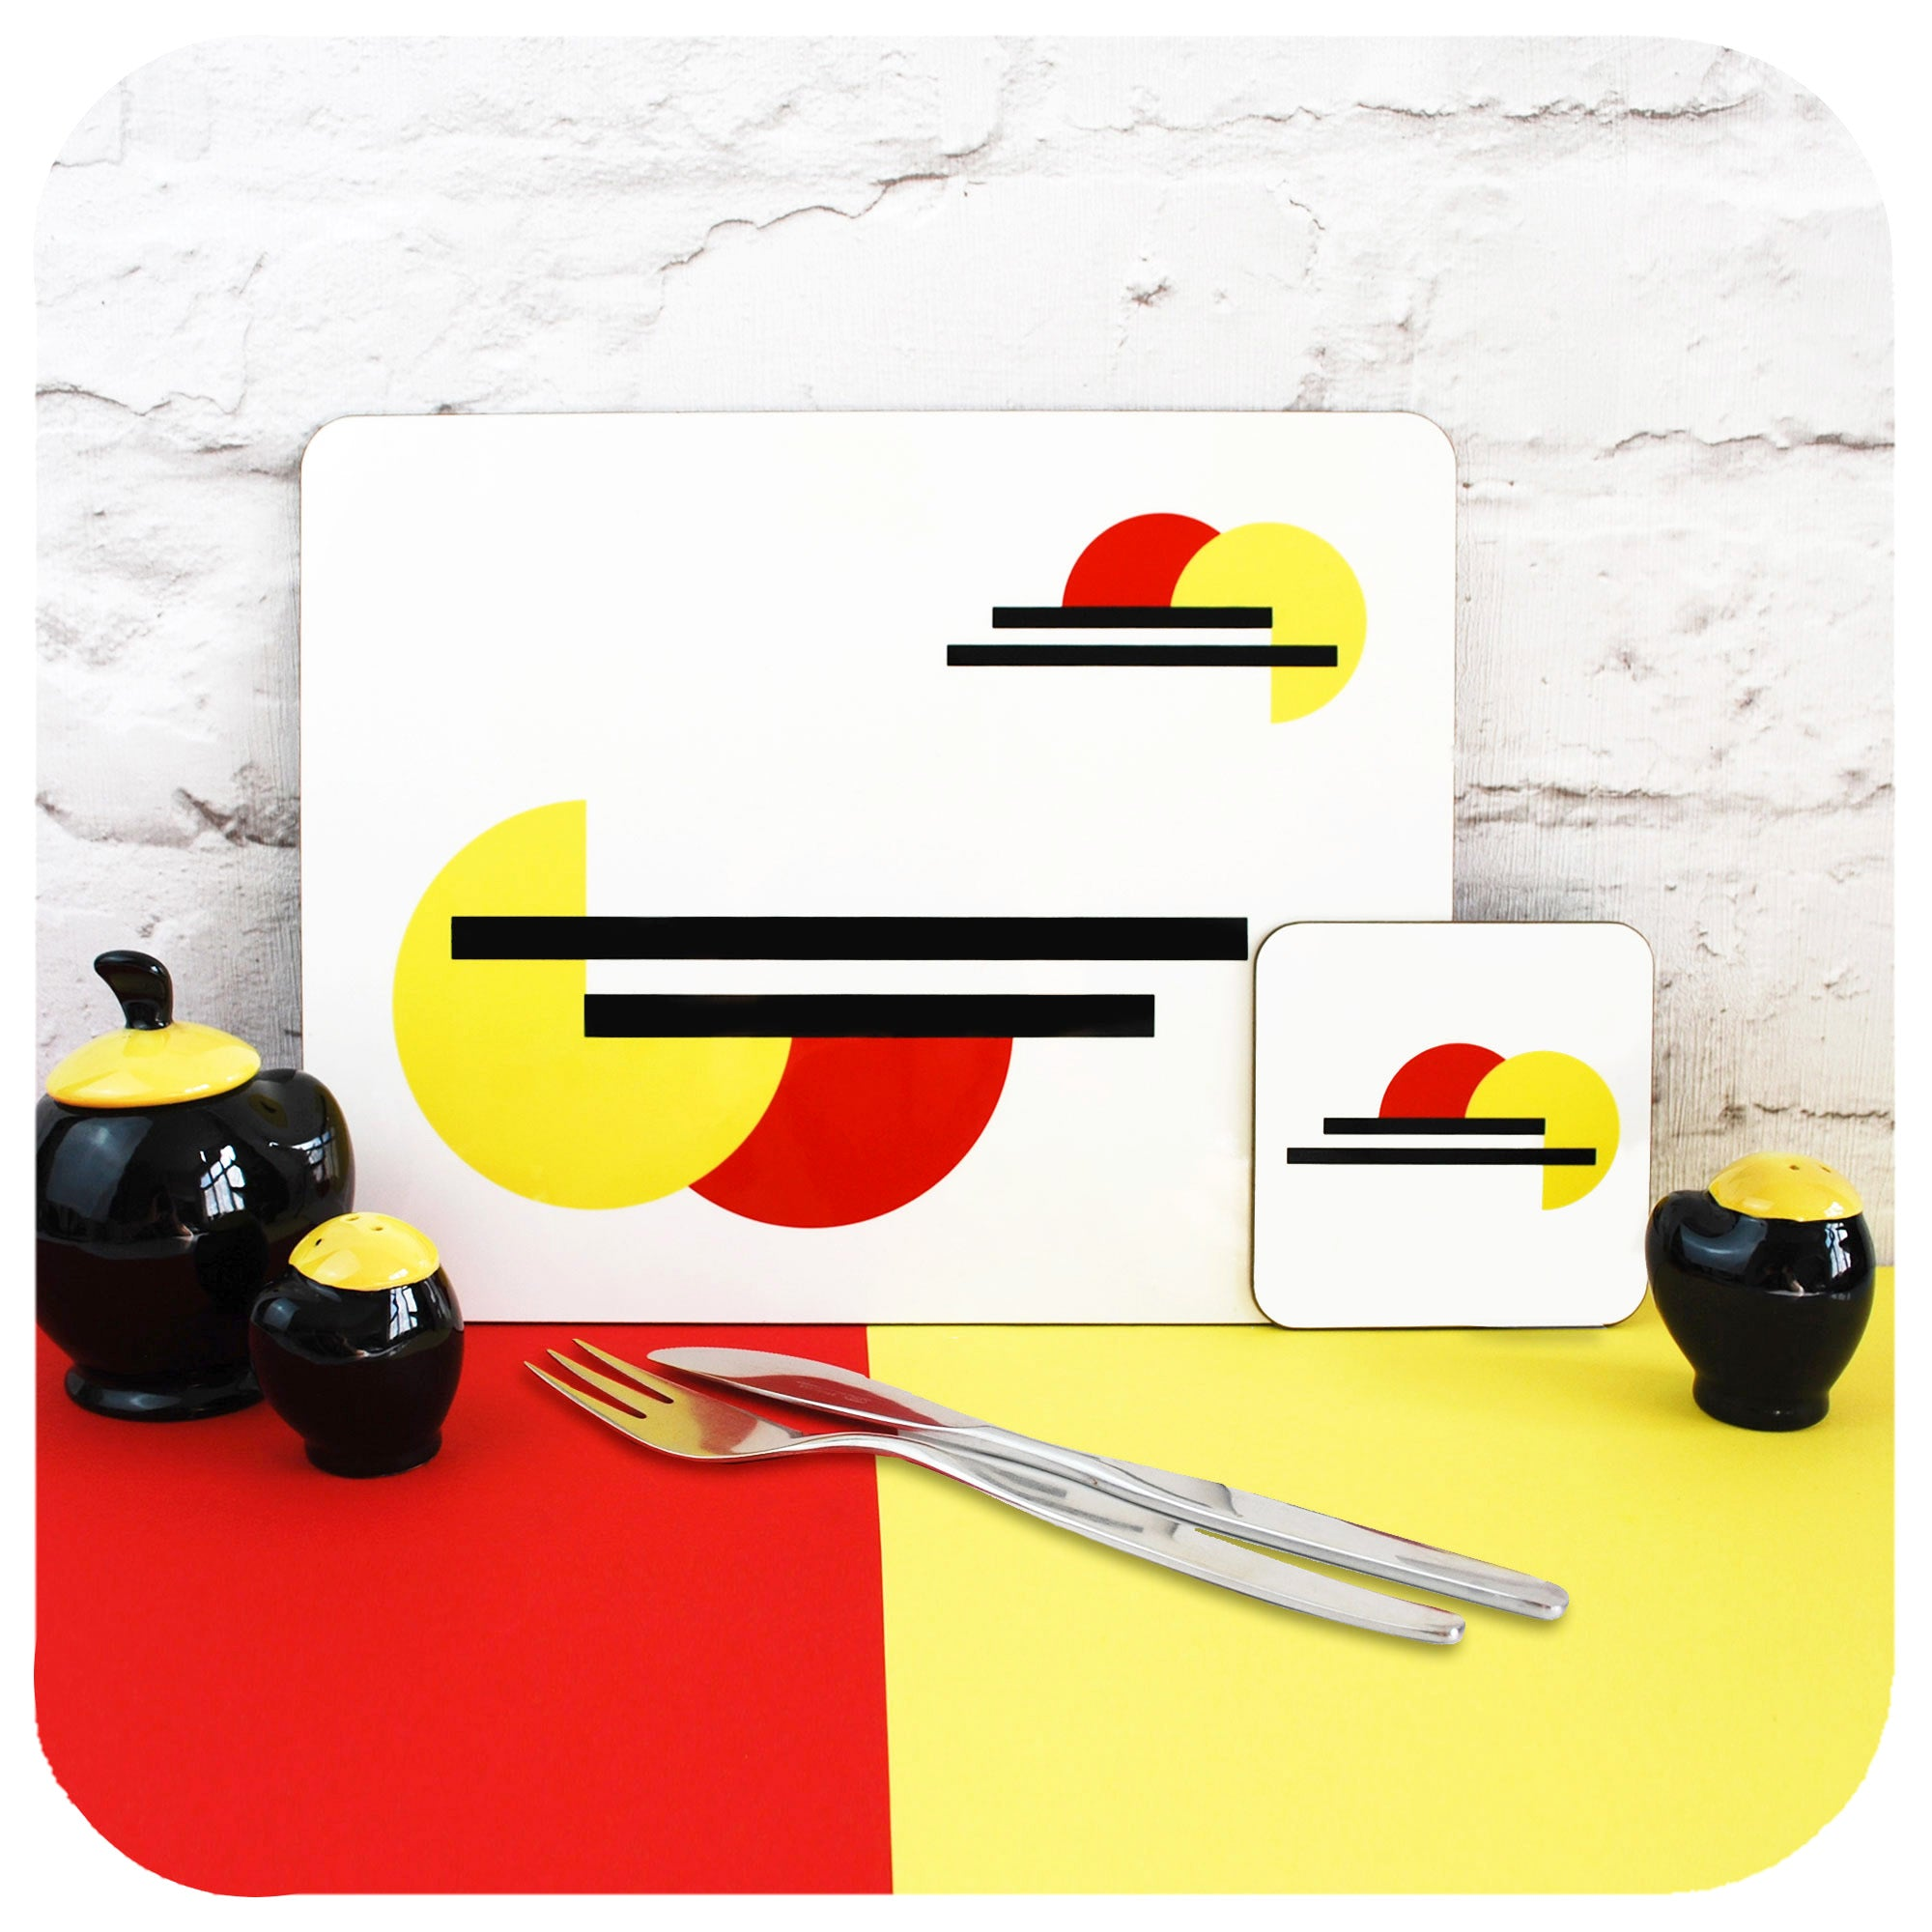 Bauhaus style placemat and coaster with vintage cruet set and cutlery | The Inkabilly Emporium